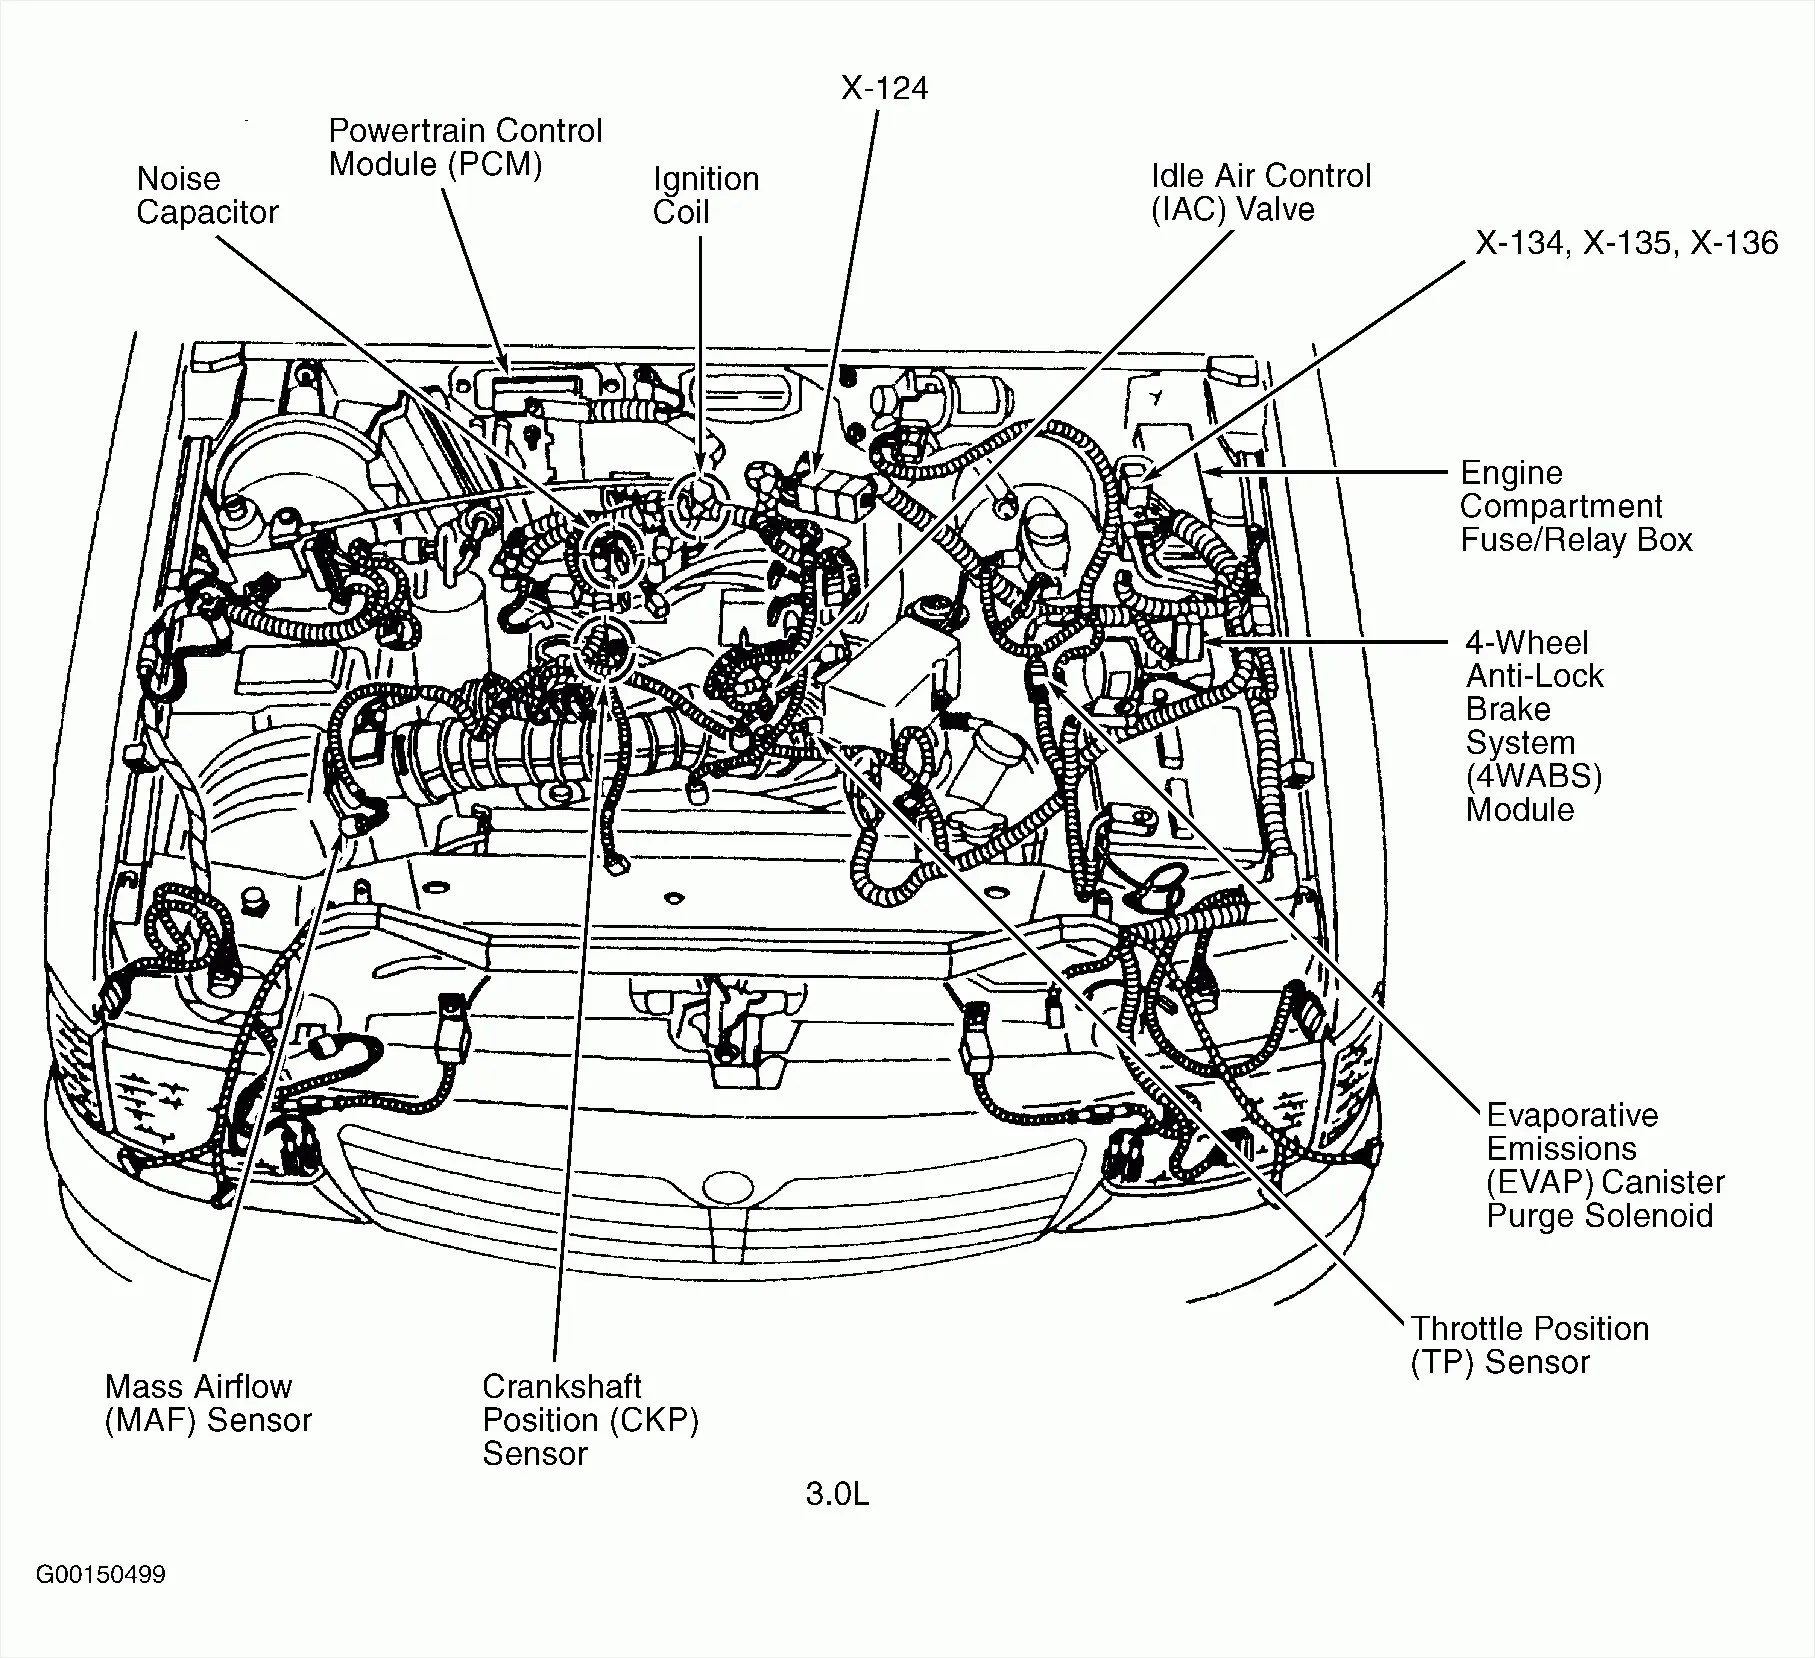 hight resolution of audi a6 engine diagram wiring diagram schematic 2002 audi a6 fuse diagram moreover 2001 audi a6 engine diagram in